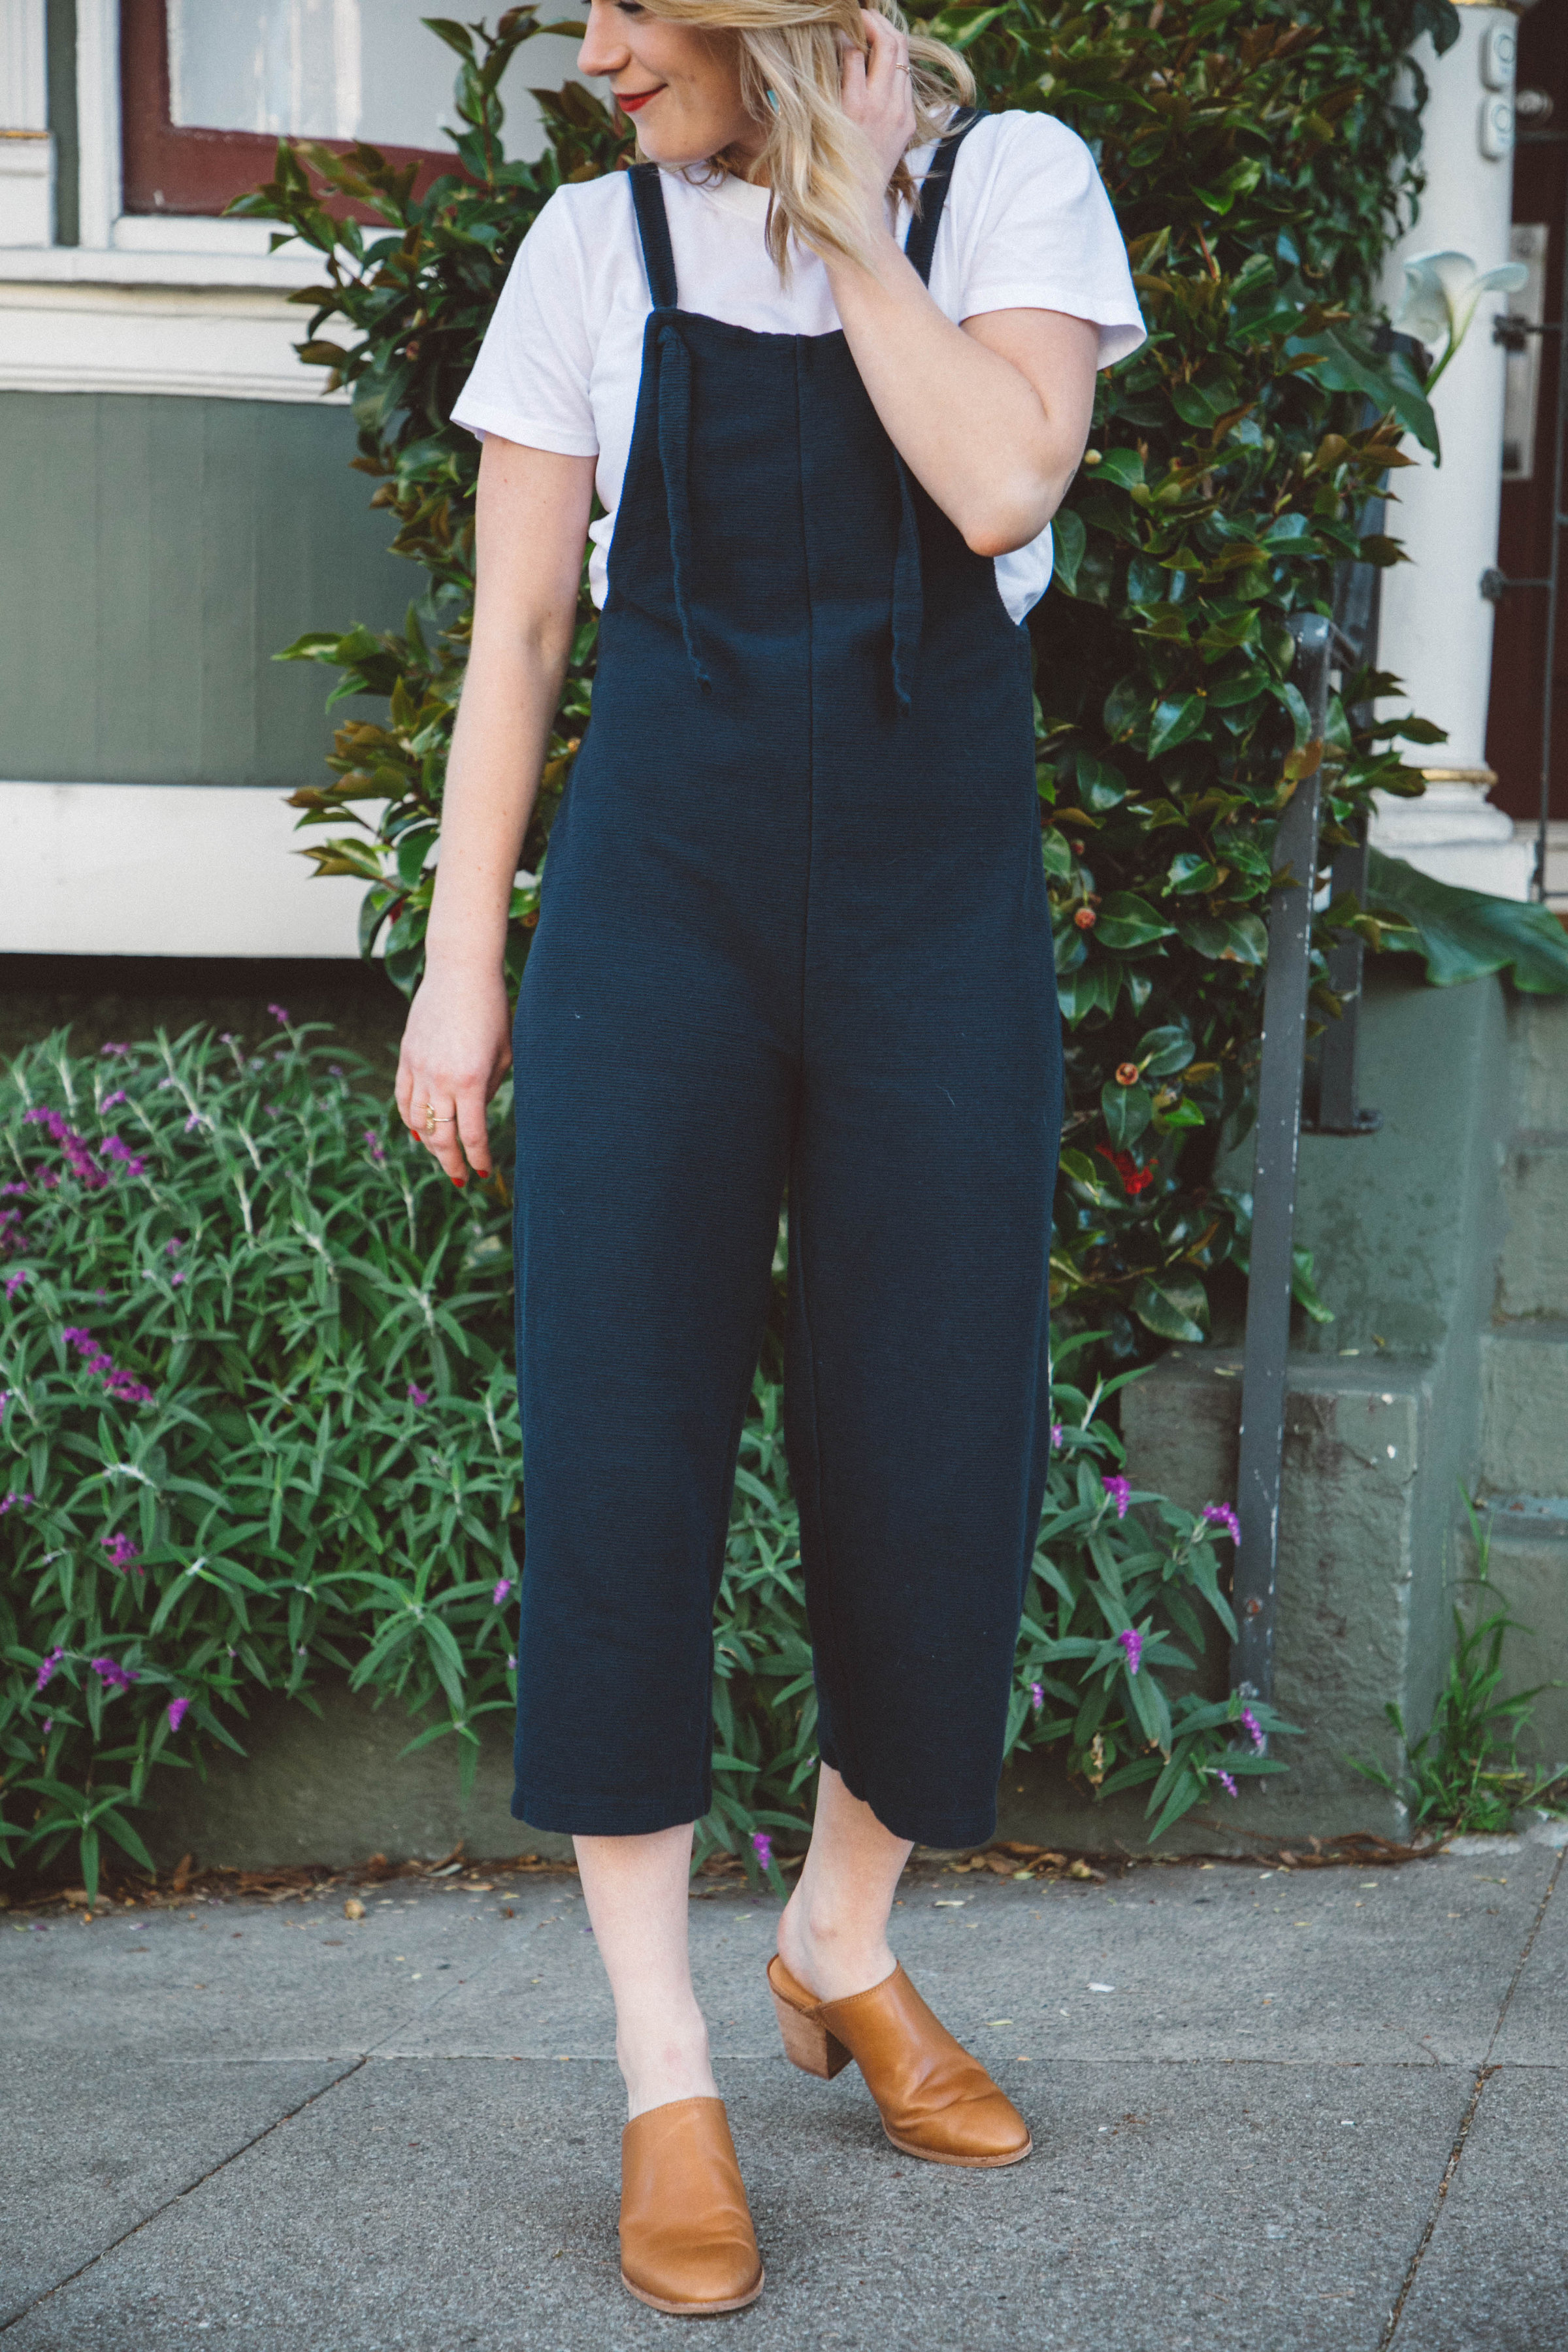 All About The Jumpsuit // A knit Madewell jumpsuit dresses up a classic Everlane white tee for an easy, everyday look.